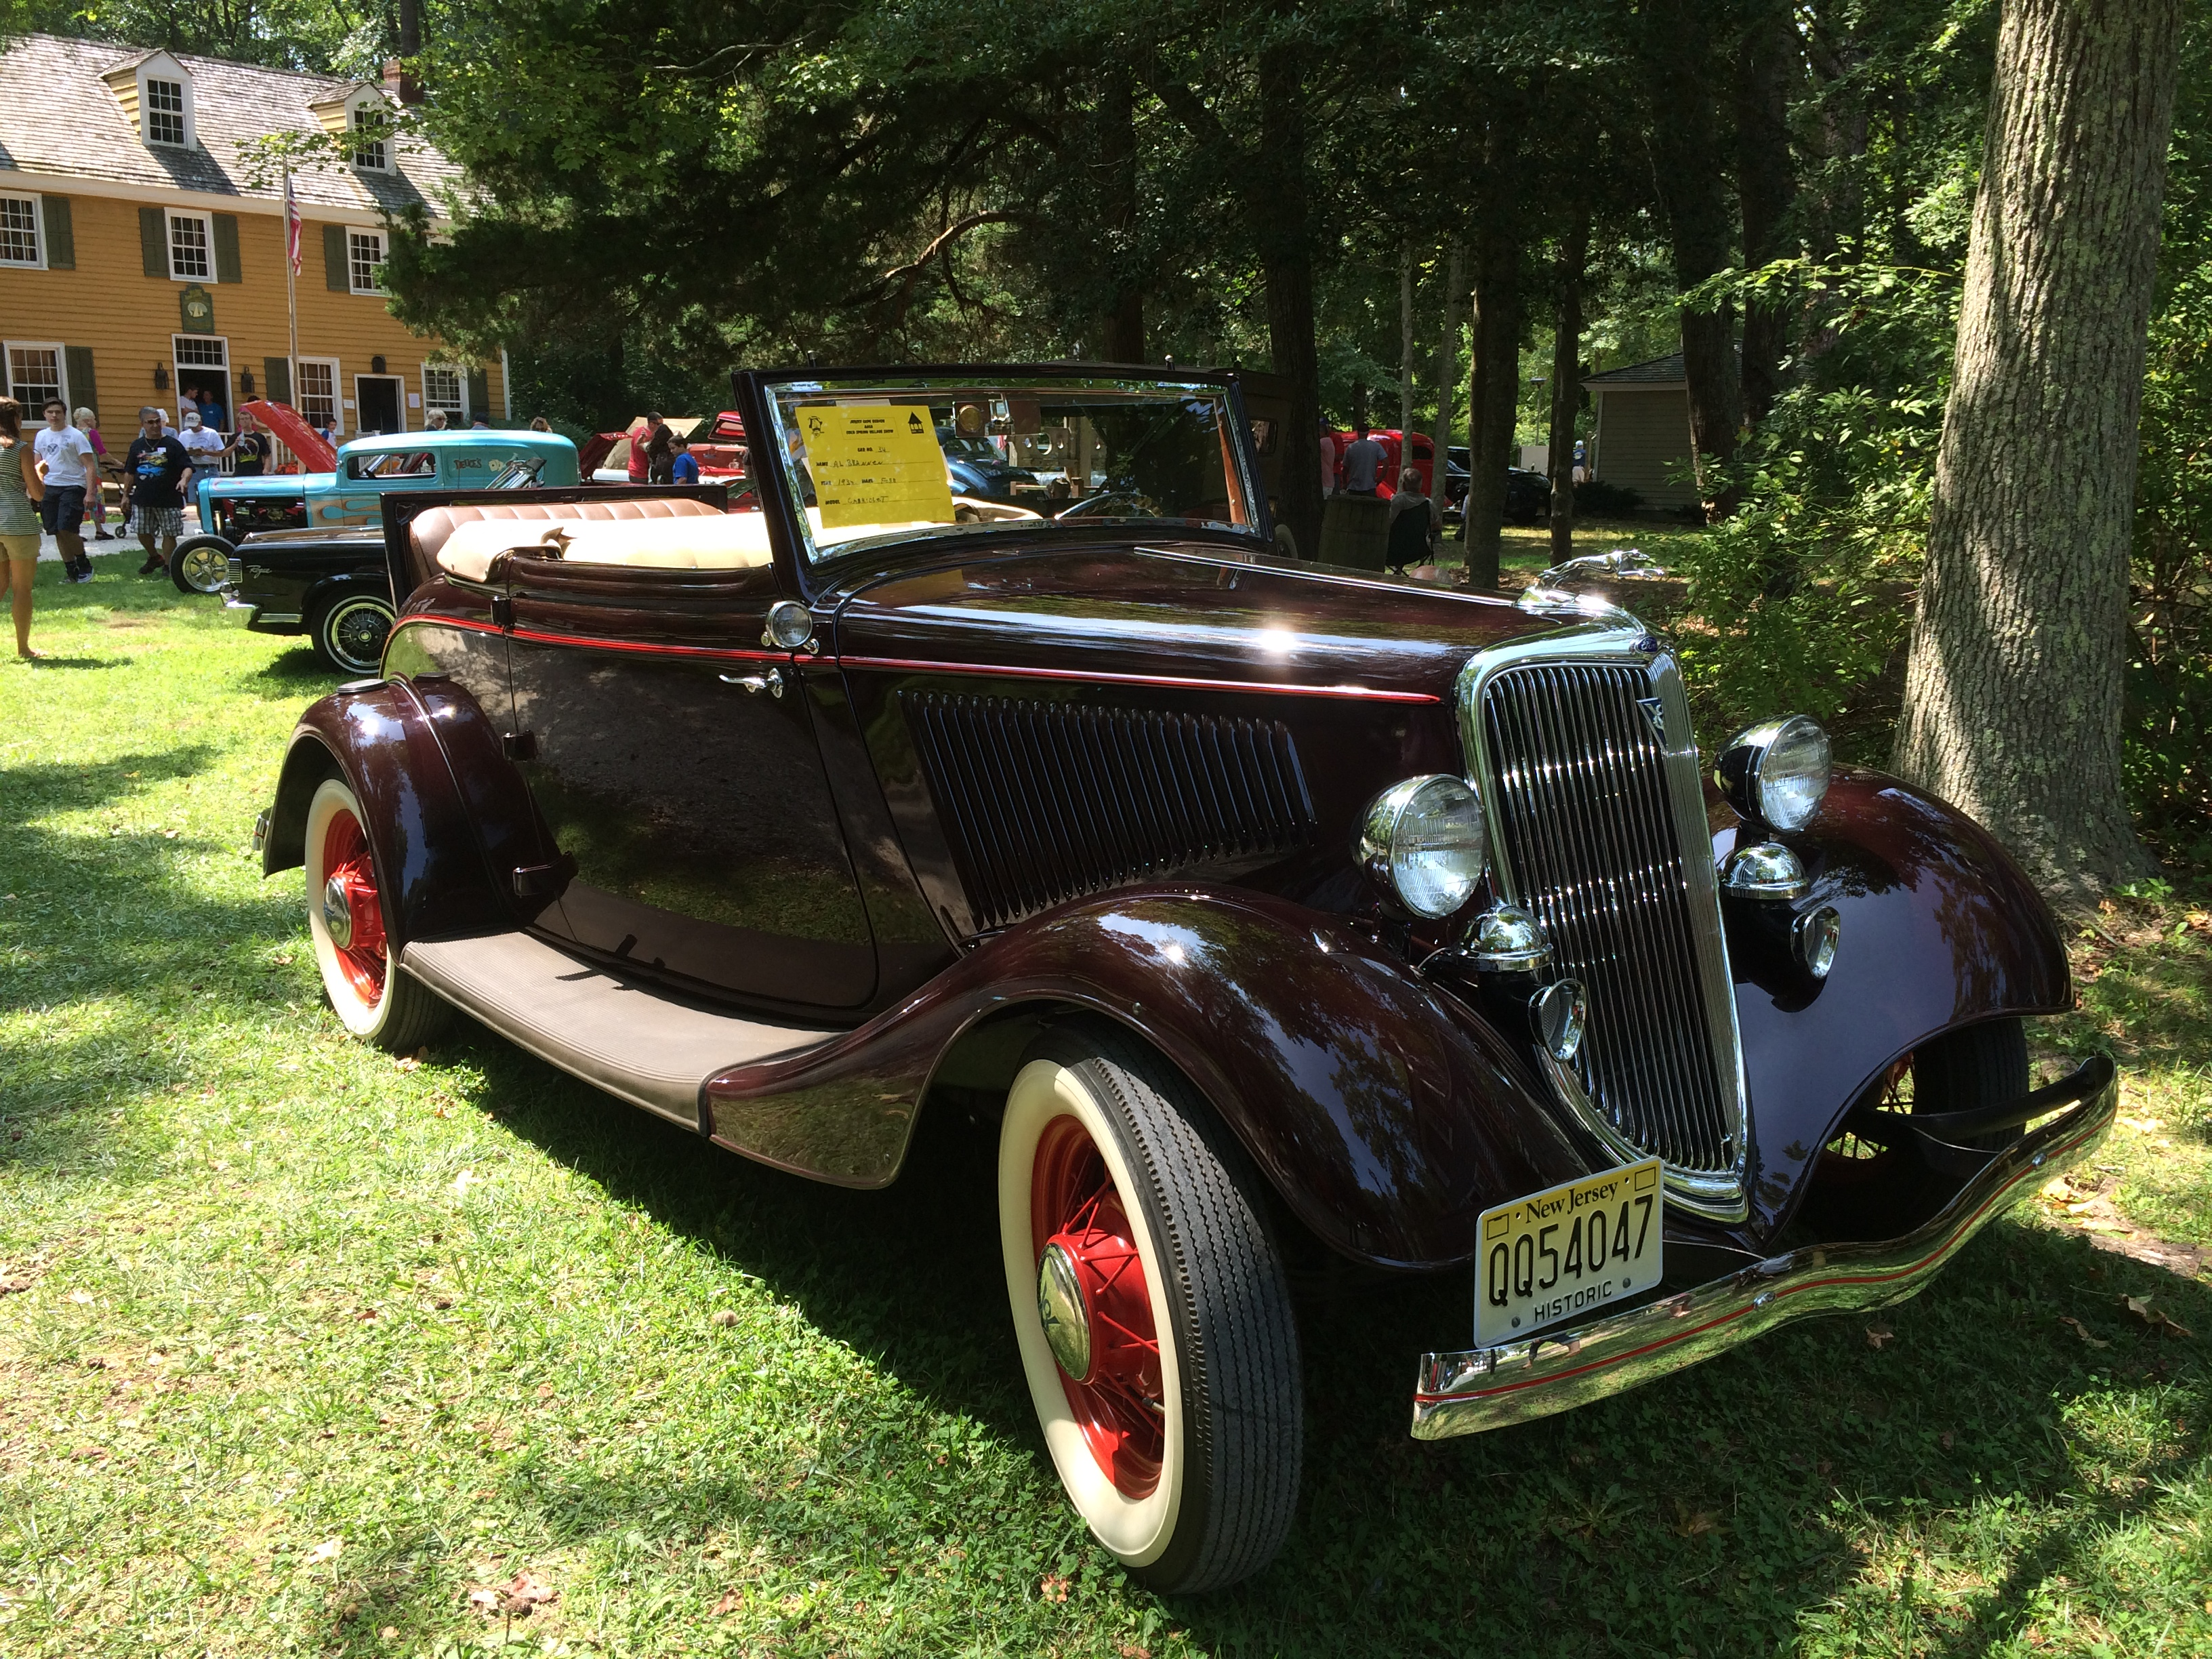 2019 CAPE MAY, NJ ANTIQUE & CLASSIC AUTOMOBILE SHOW